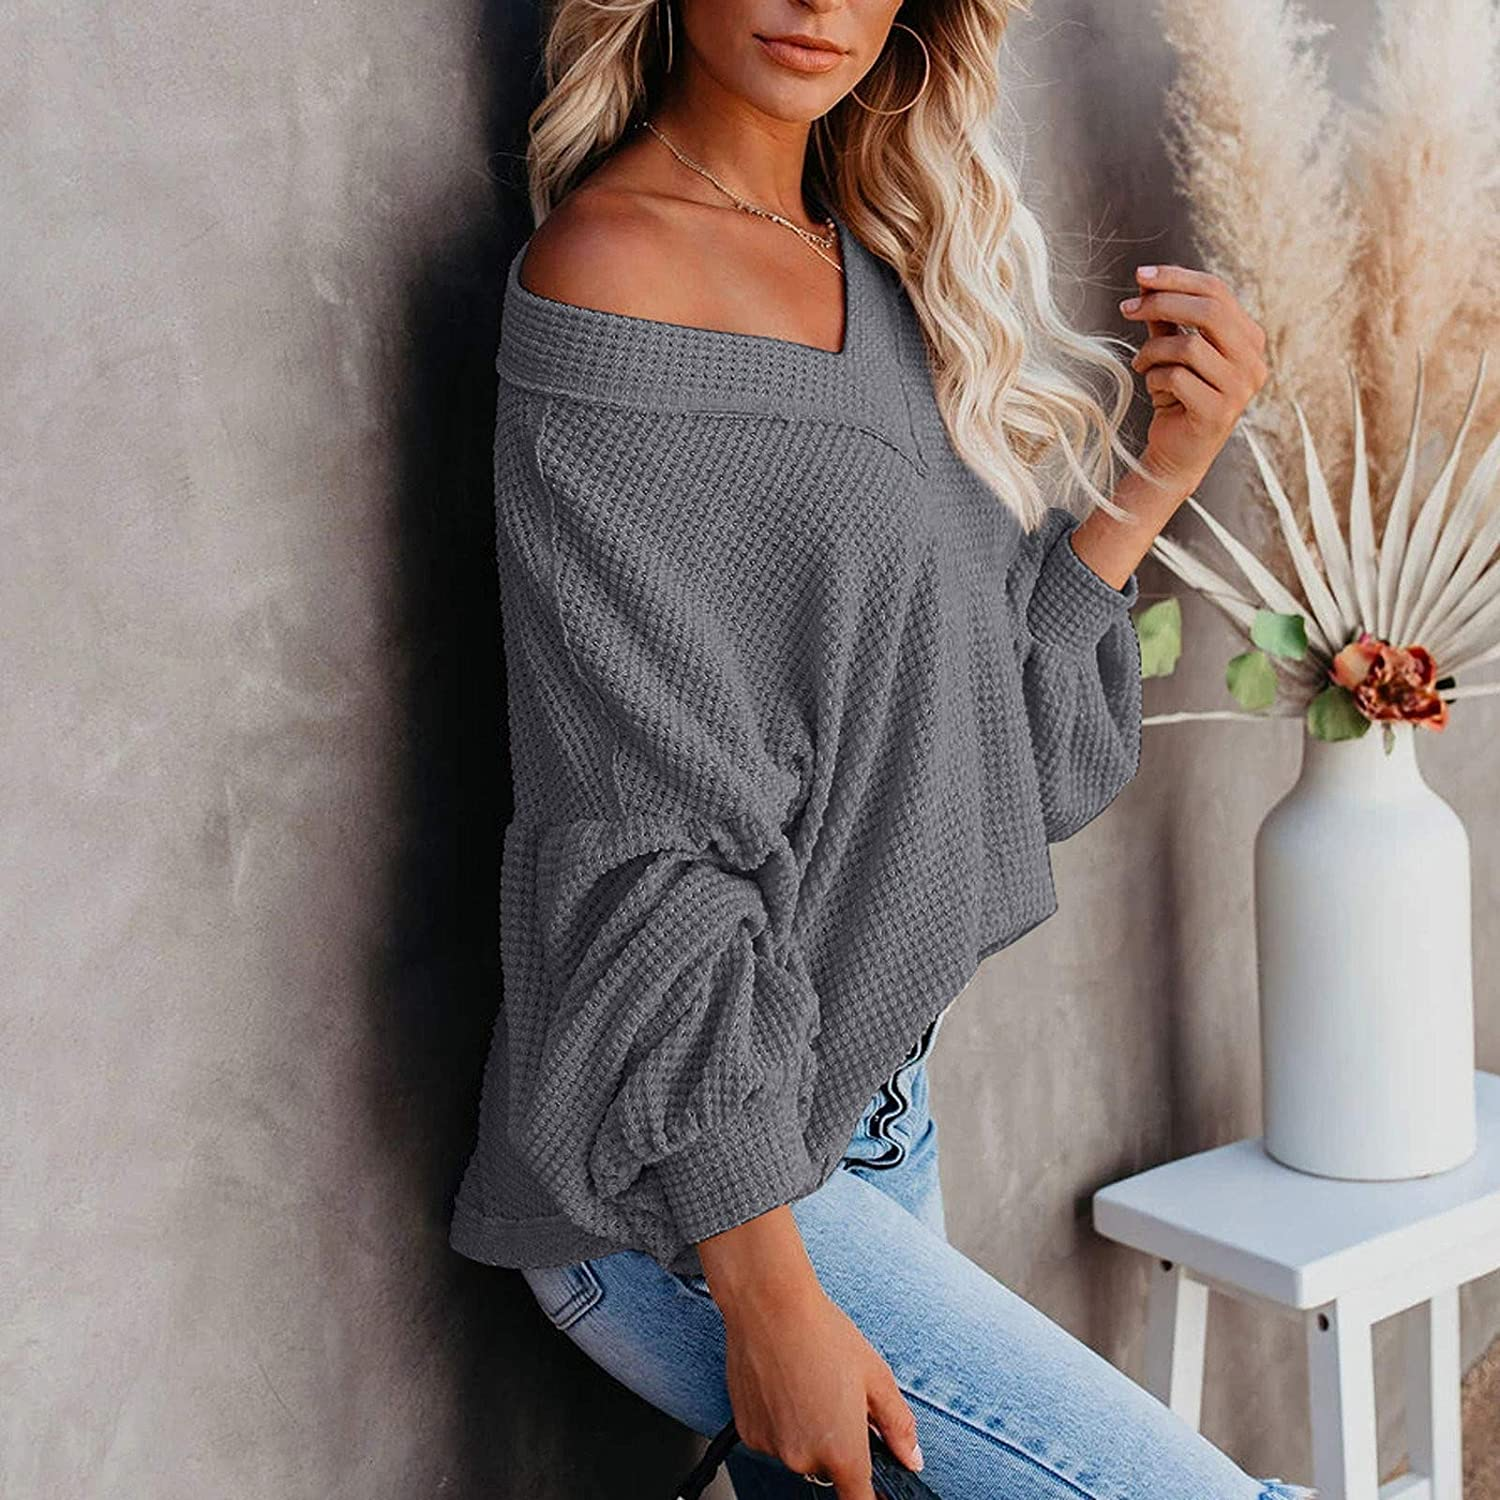 6865 Women Hollow Out Knitting Tunic Tops Long Sleeve v Neck Casual Loose Solid Color Shirt